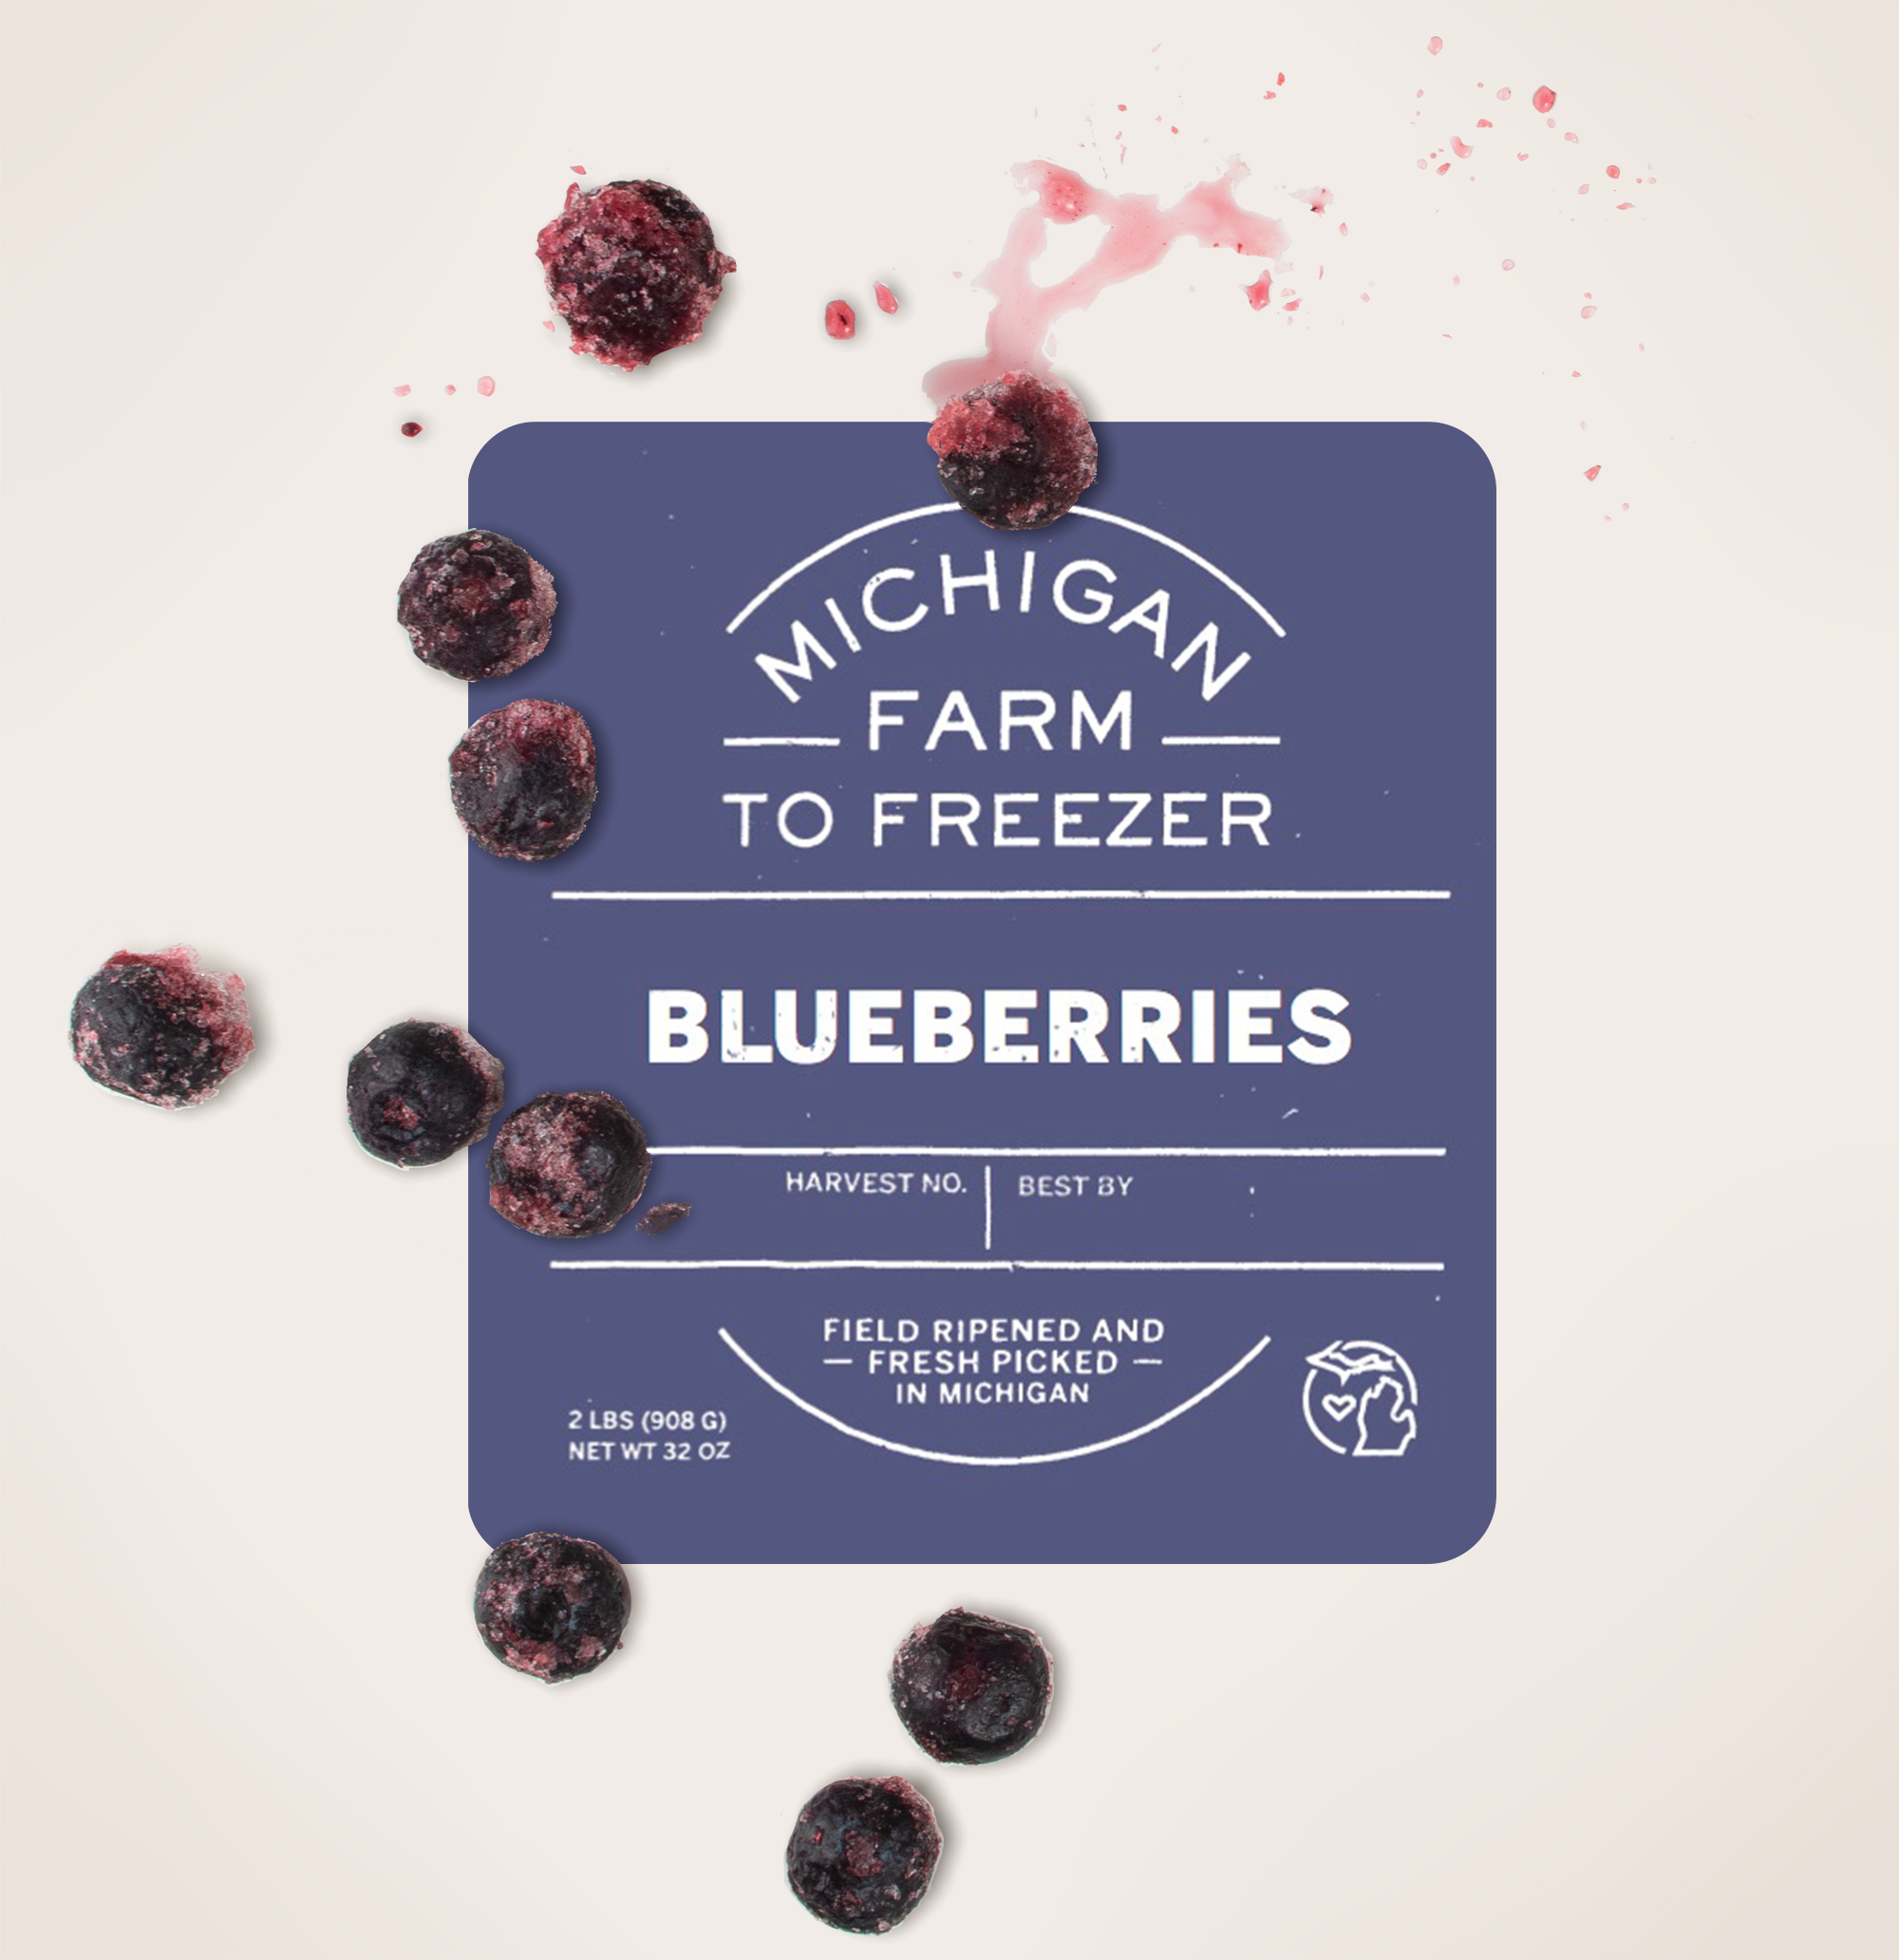 MiFarm-Blueberries-Crop-V2